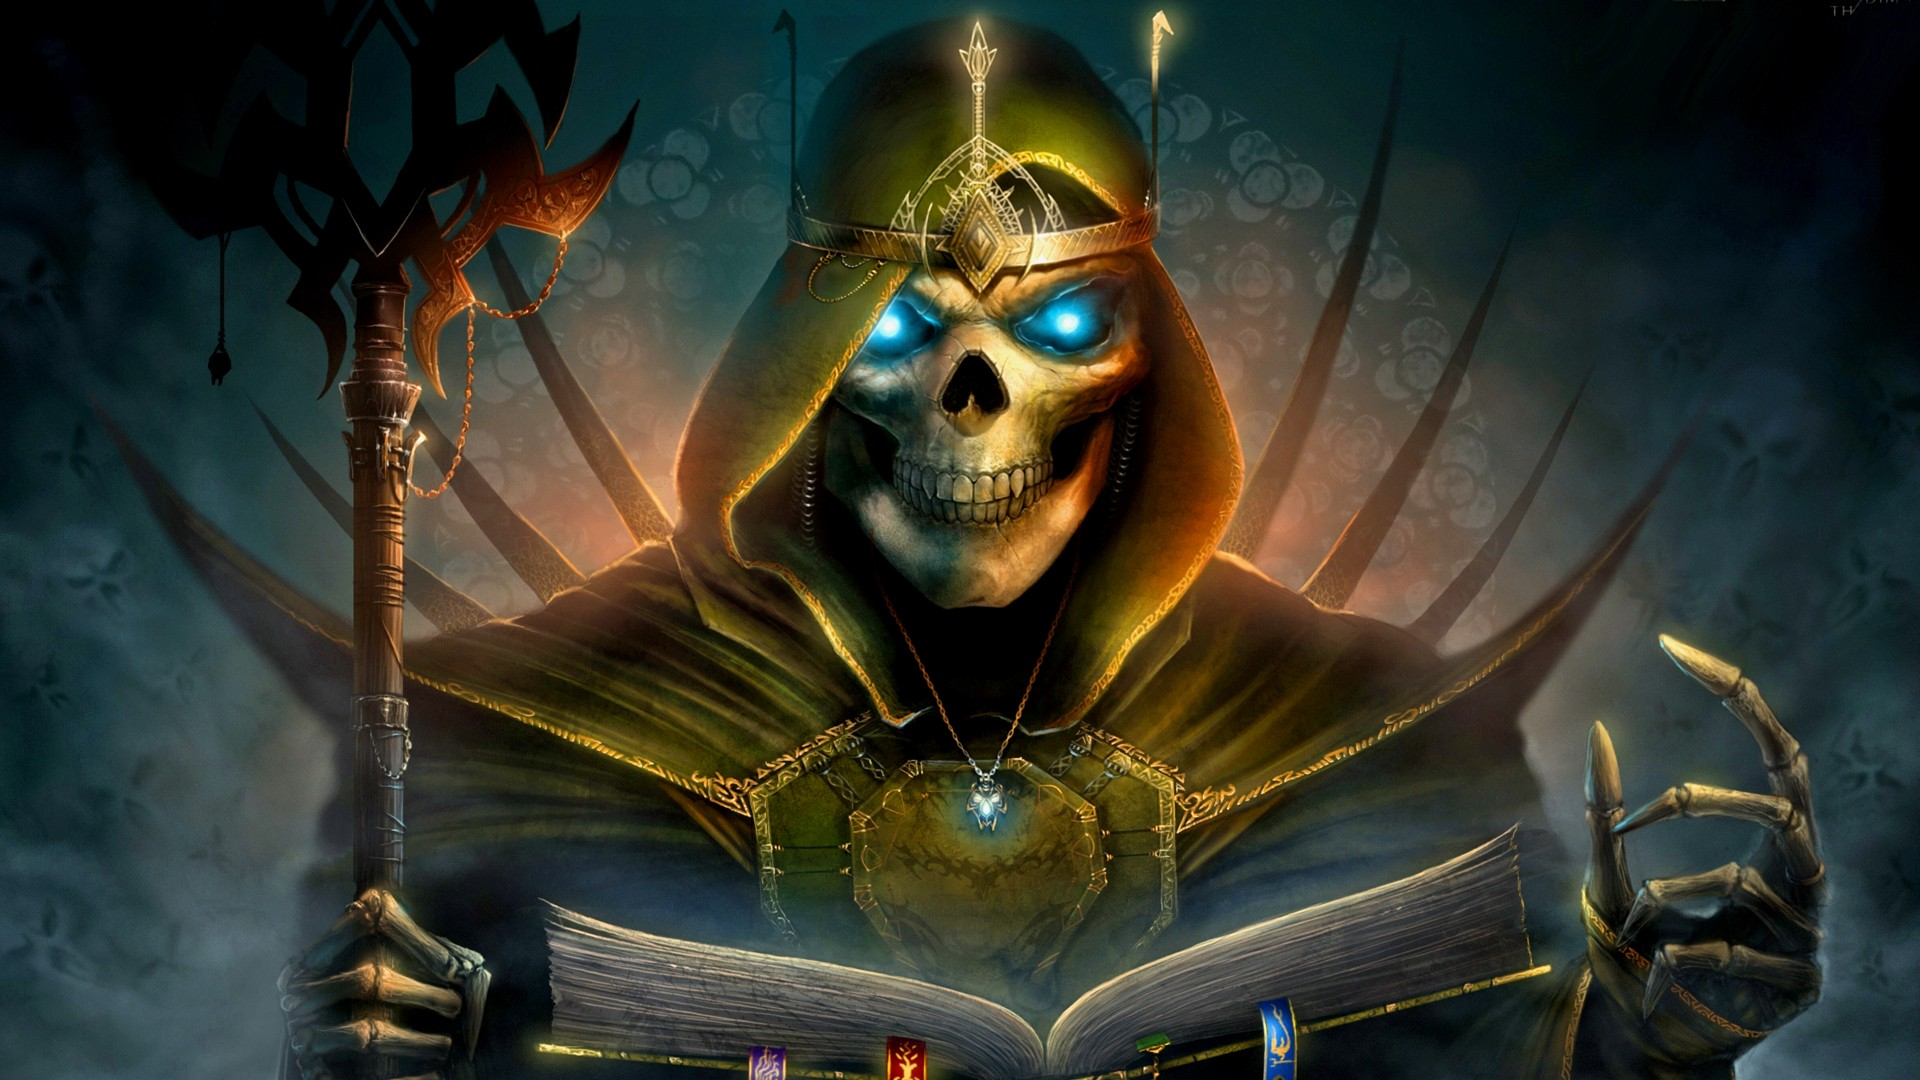 3d Anaglyph Wallpaper Desktop Heroes Of Might And Magic Fantasy Art Death Wallpapers